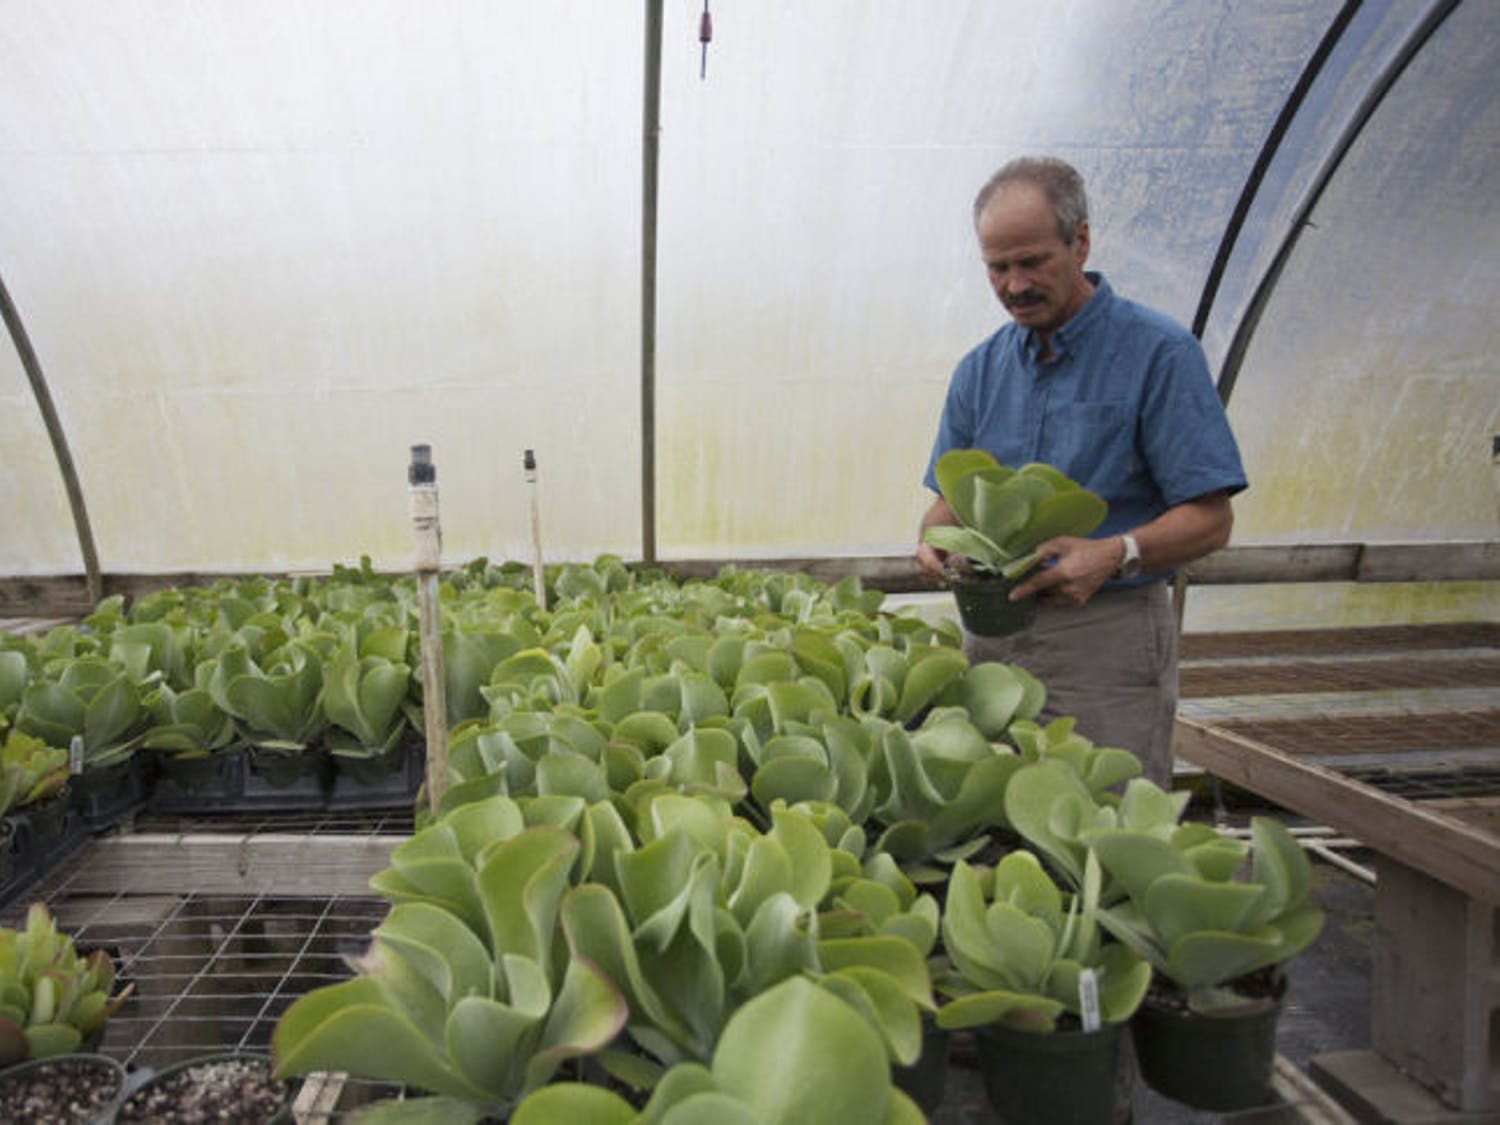 Alan Shapiro, president of Grandiflora nursery, cleans a rack of plants in one of the greenhouses on his 106-acre property. Grandiflora may be chosen to grow medical marijuana.